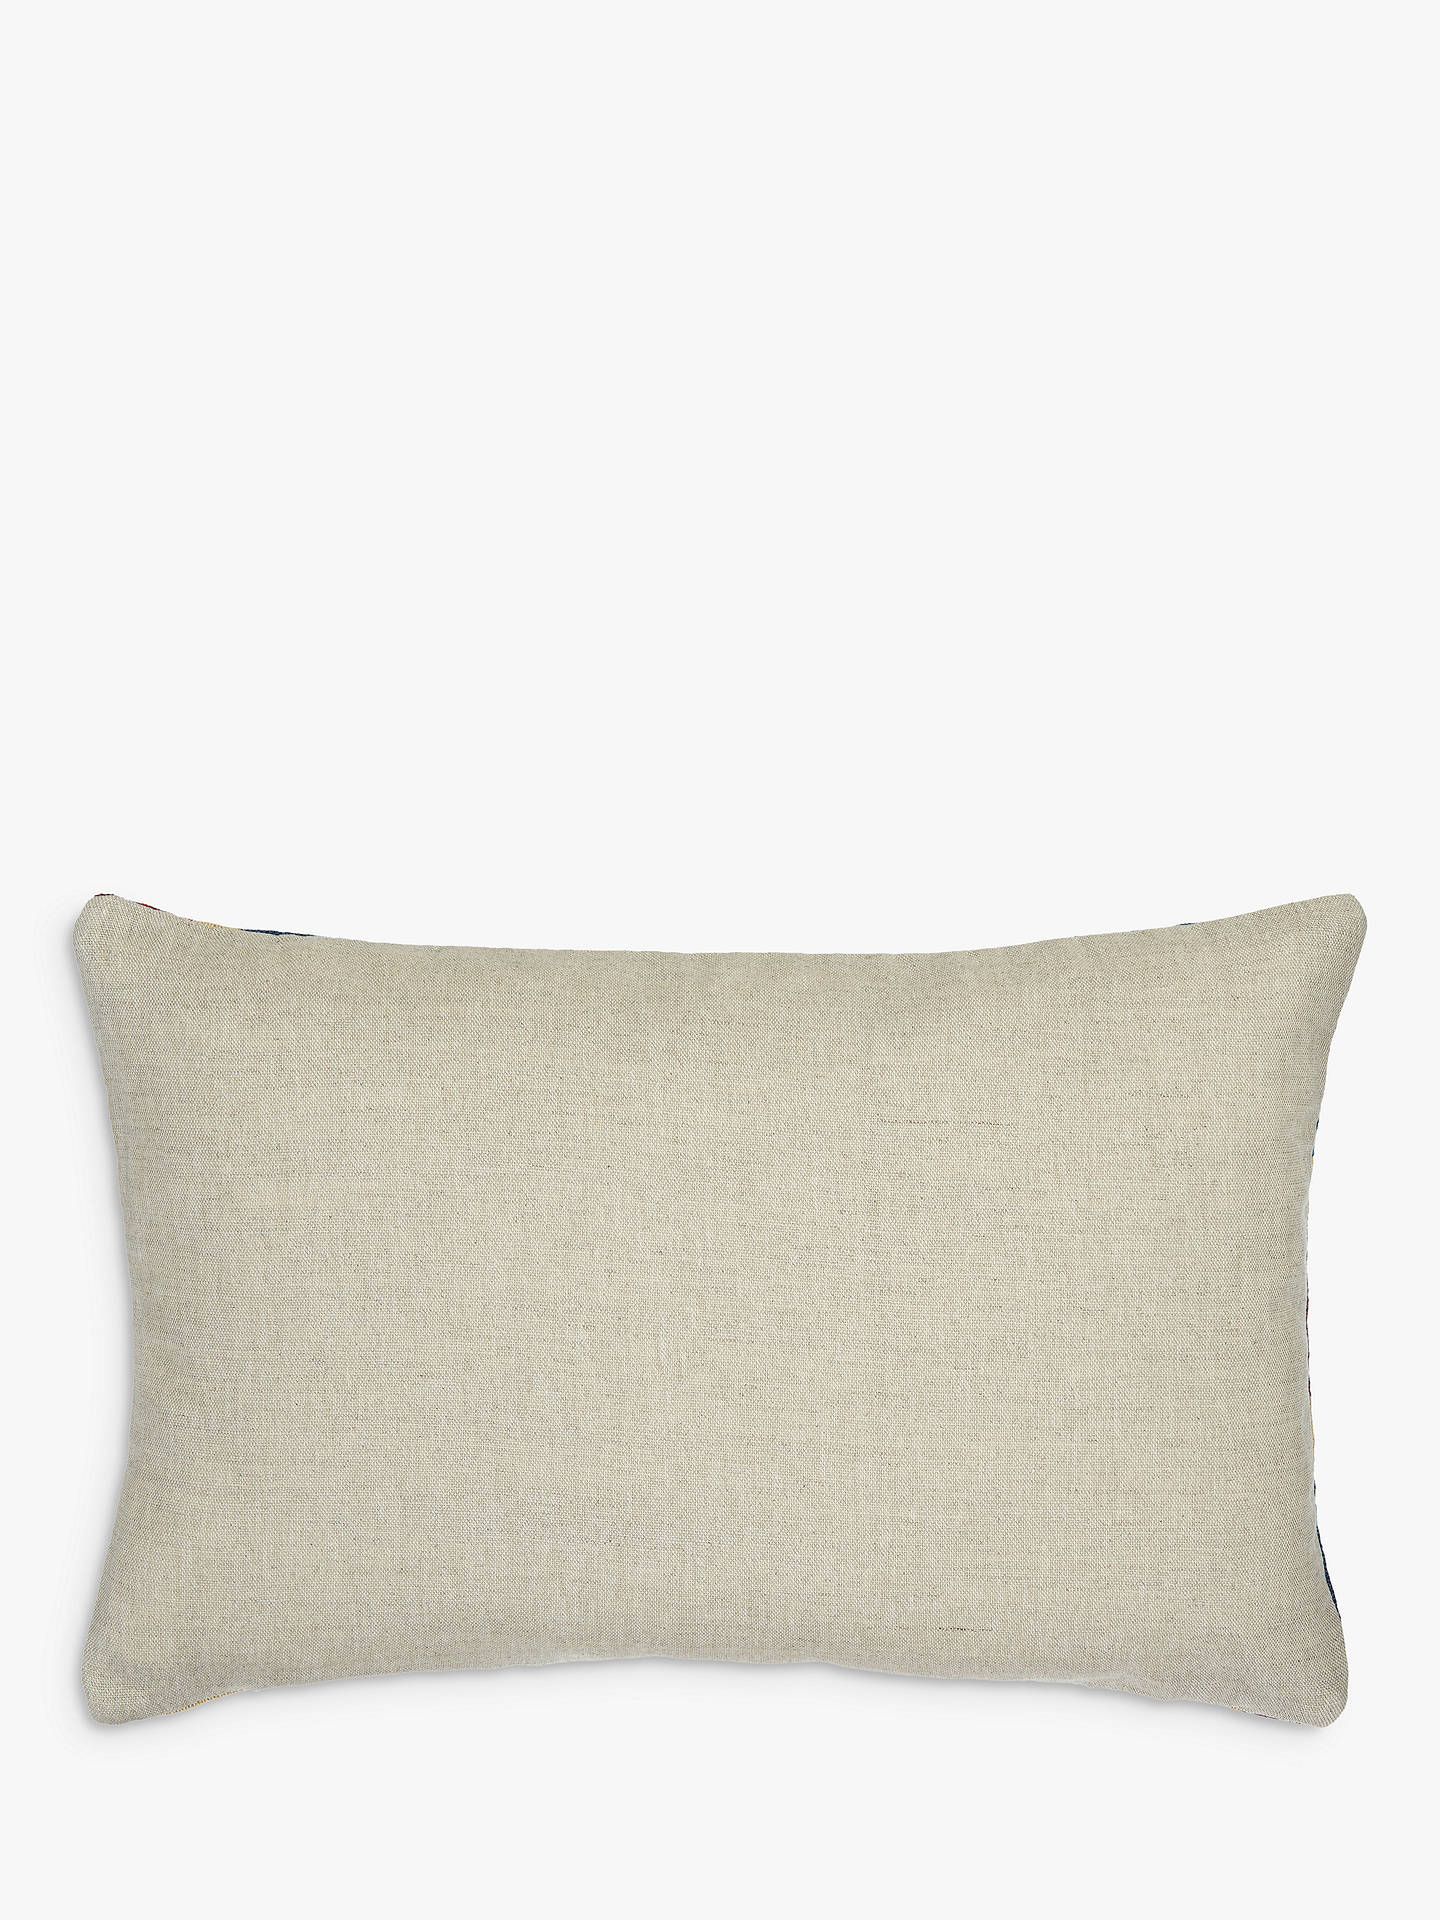 BuyJohn Lewis & Partners Victoria Cushion Online at johnlewis.com